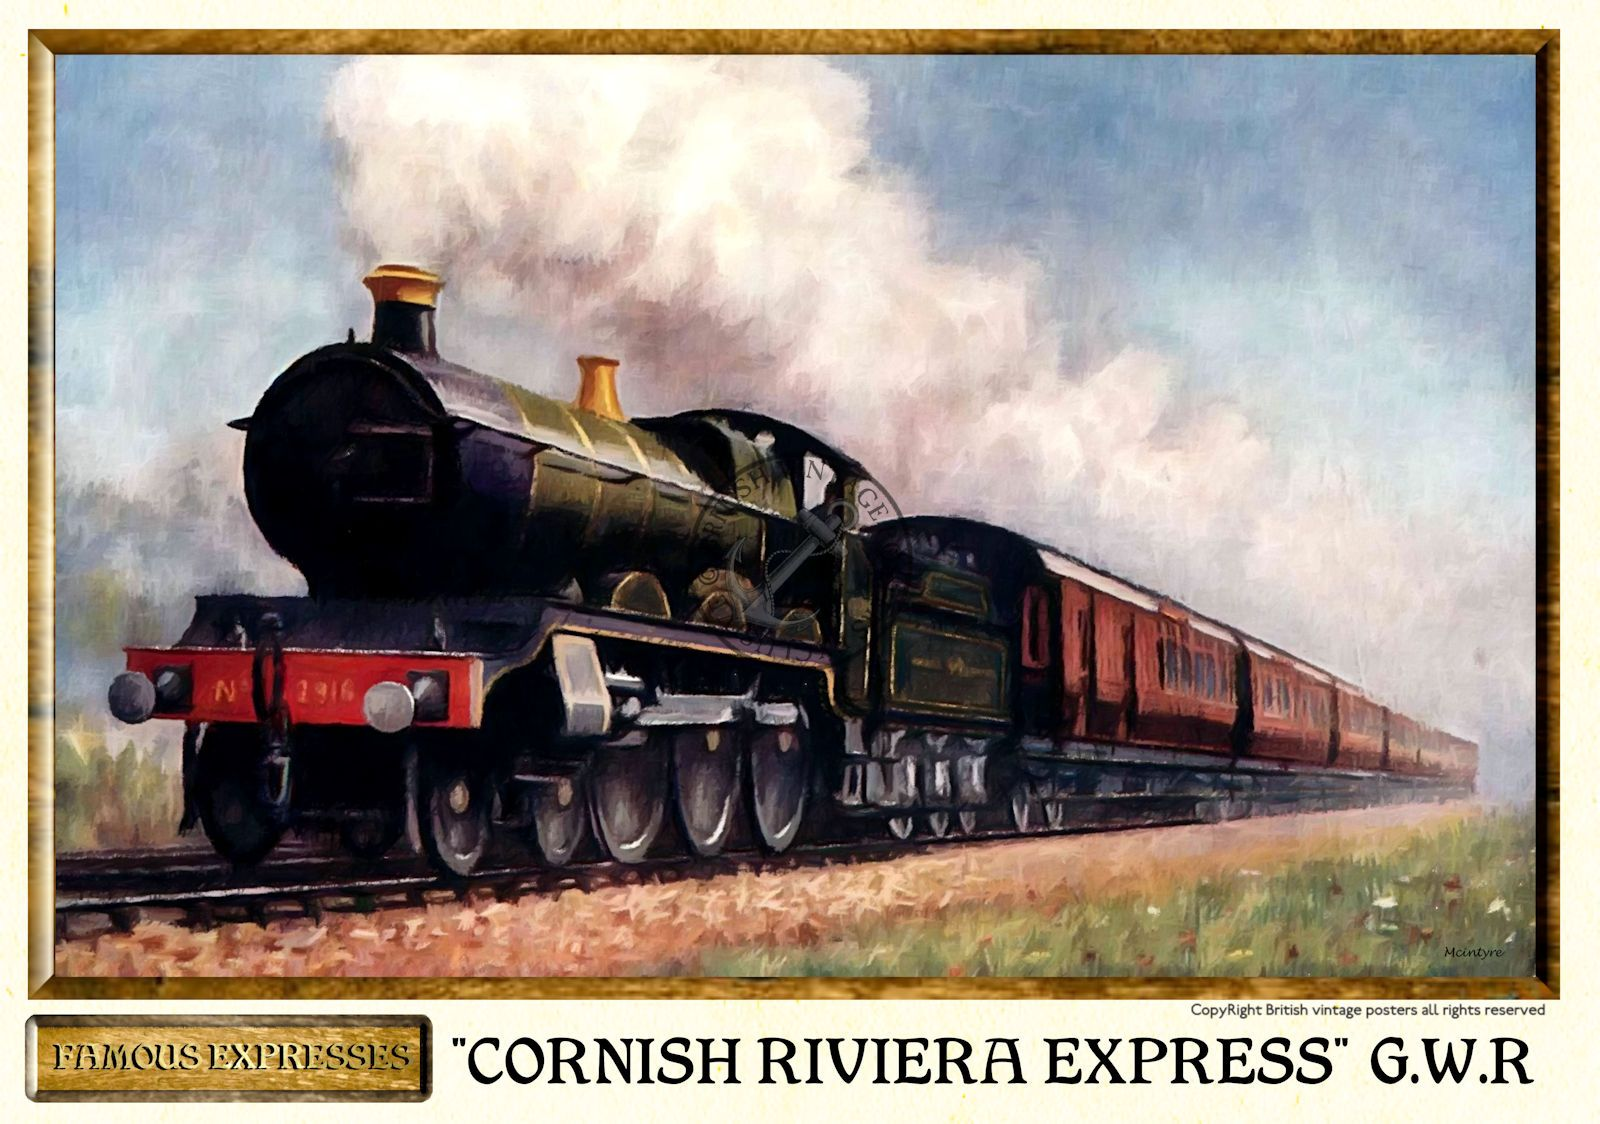 GWR Cornish Riviera Express Vintage Steam Train Poster